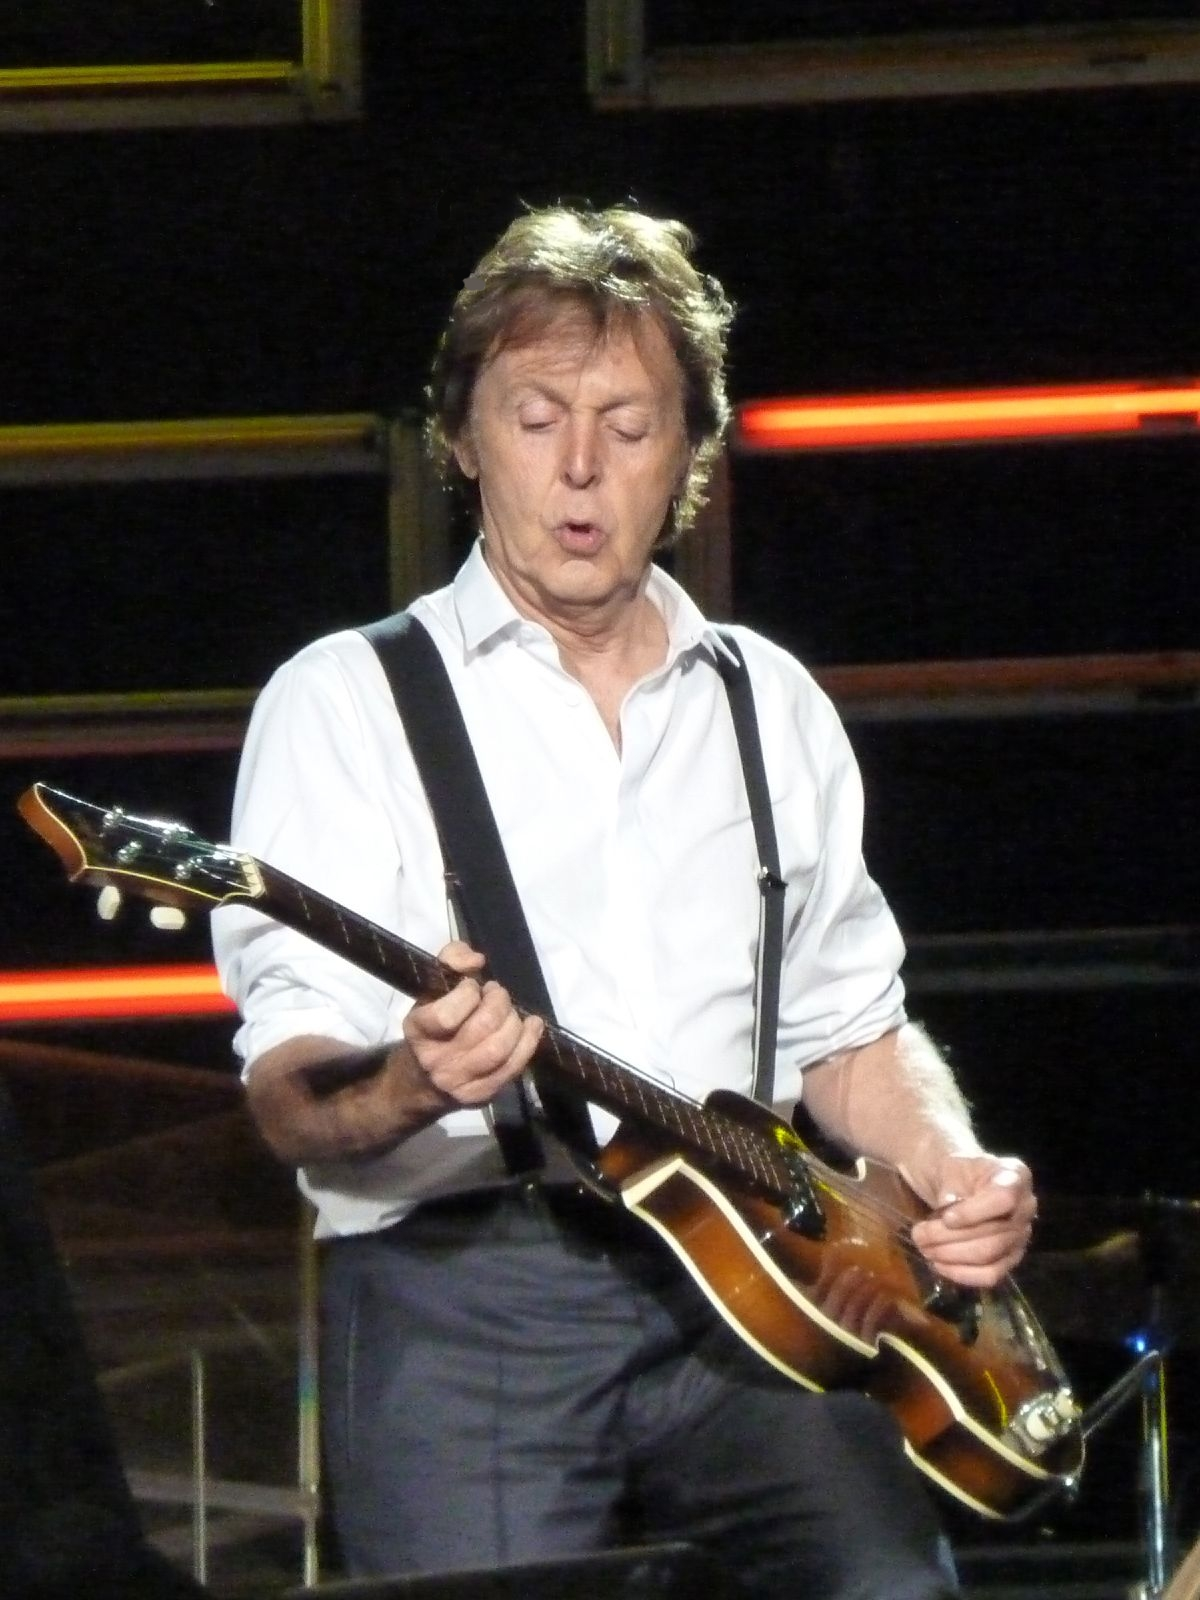 Paul McCartney - Wikipedia, la enciclopedia libre